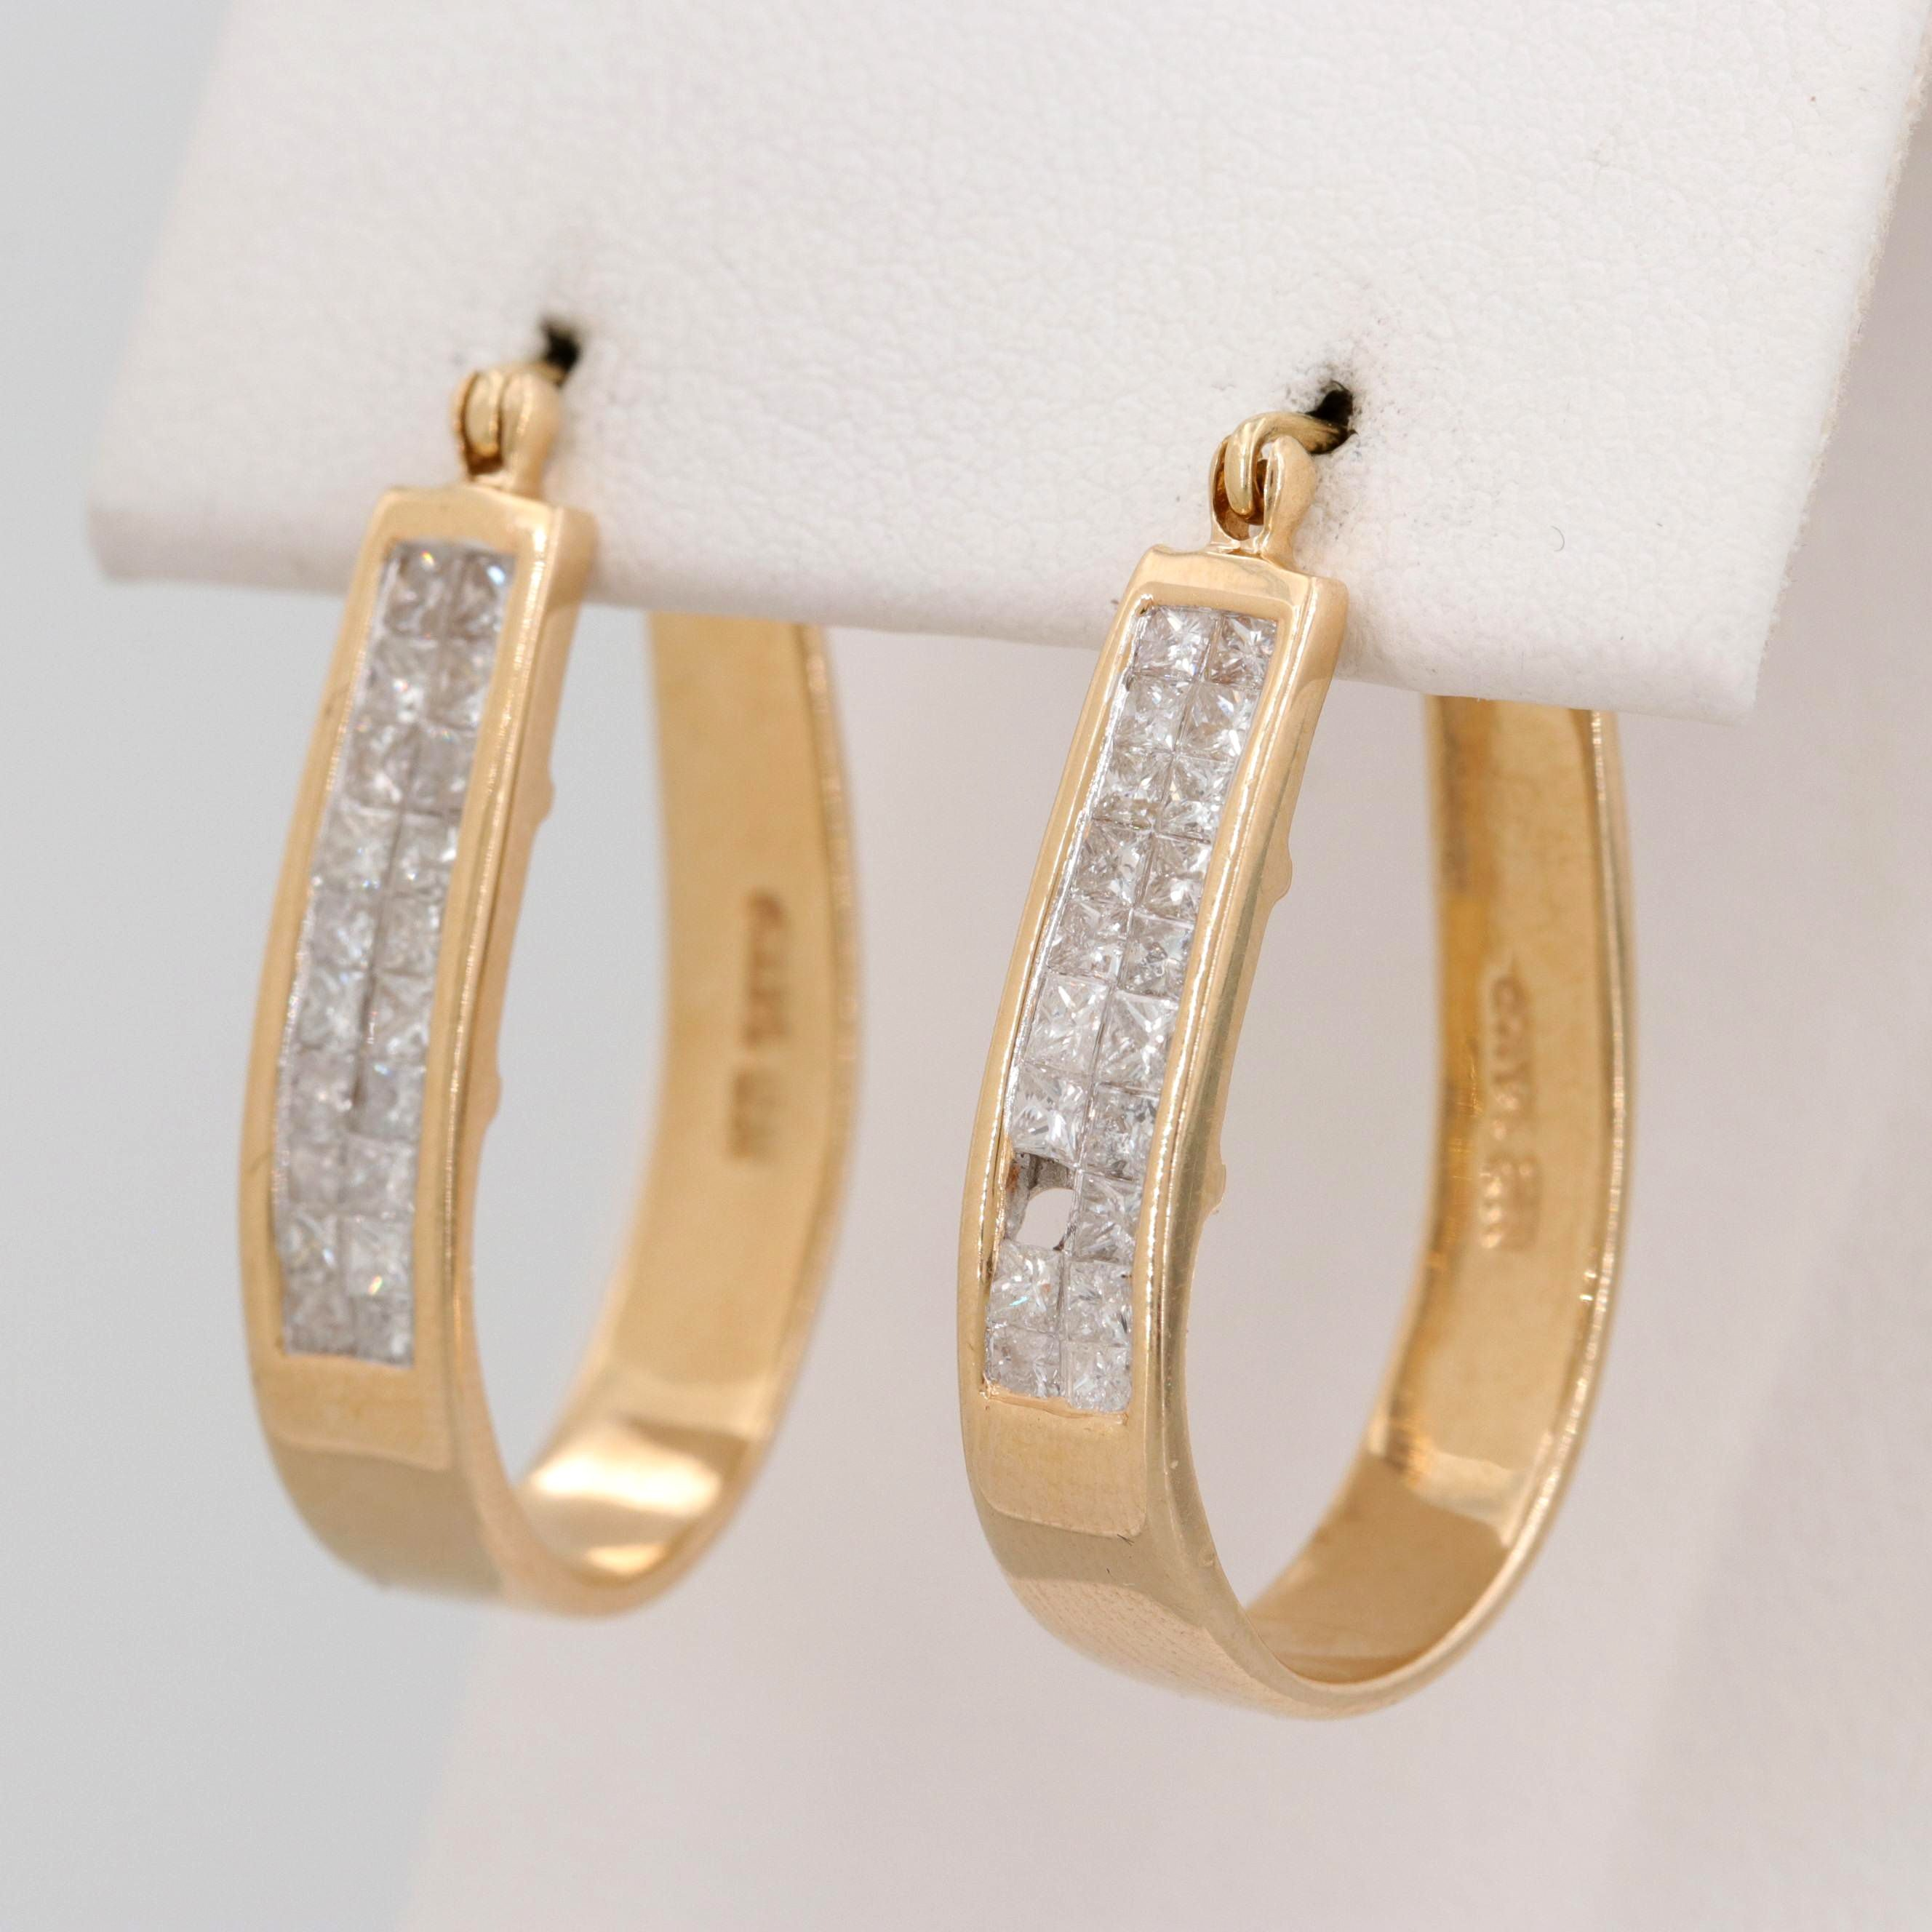 14K Yellow Gold 1.17 CTW Diamond Invisible Set Earrings